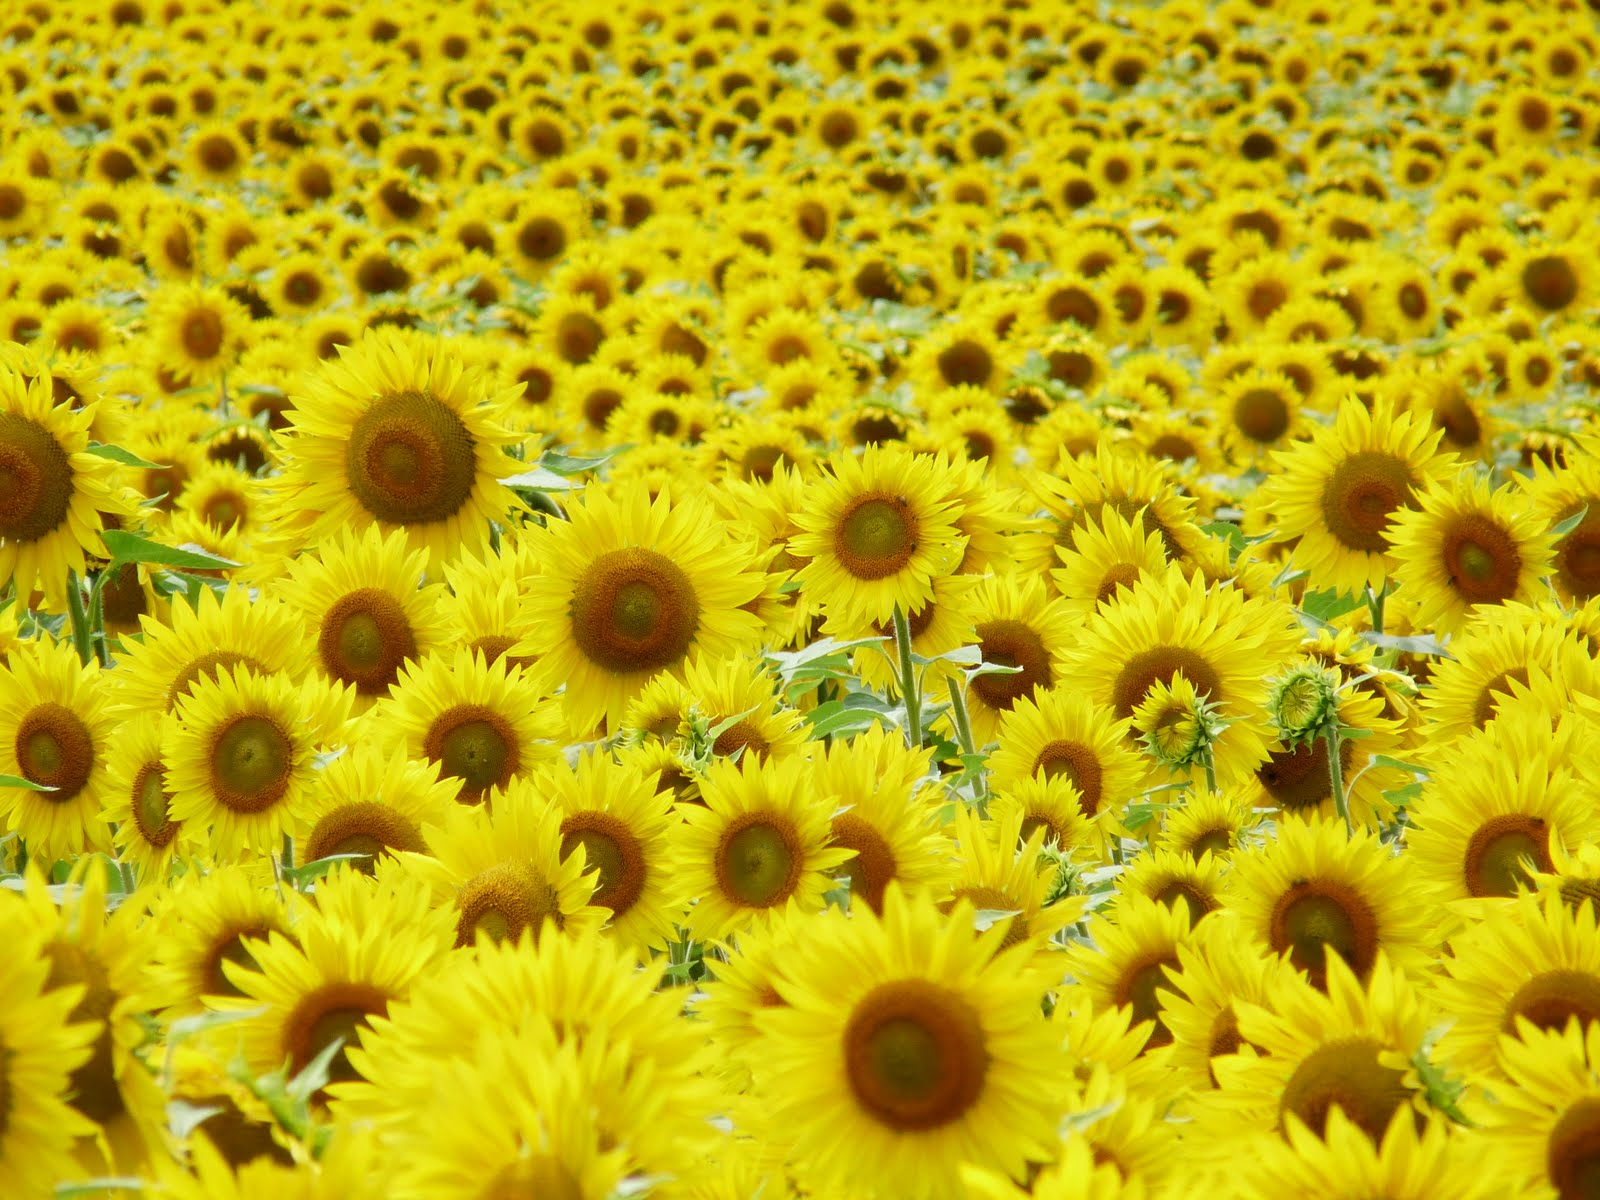 [sunflowers1]